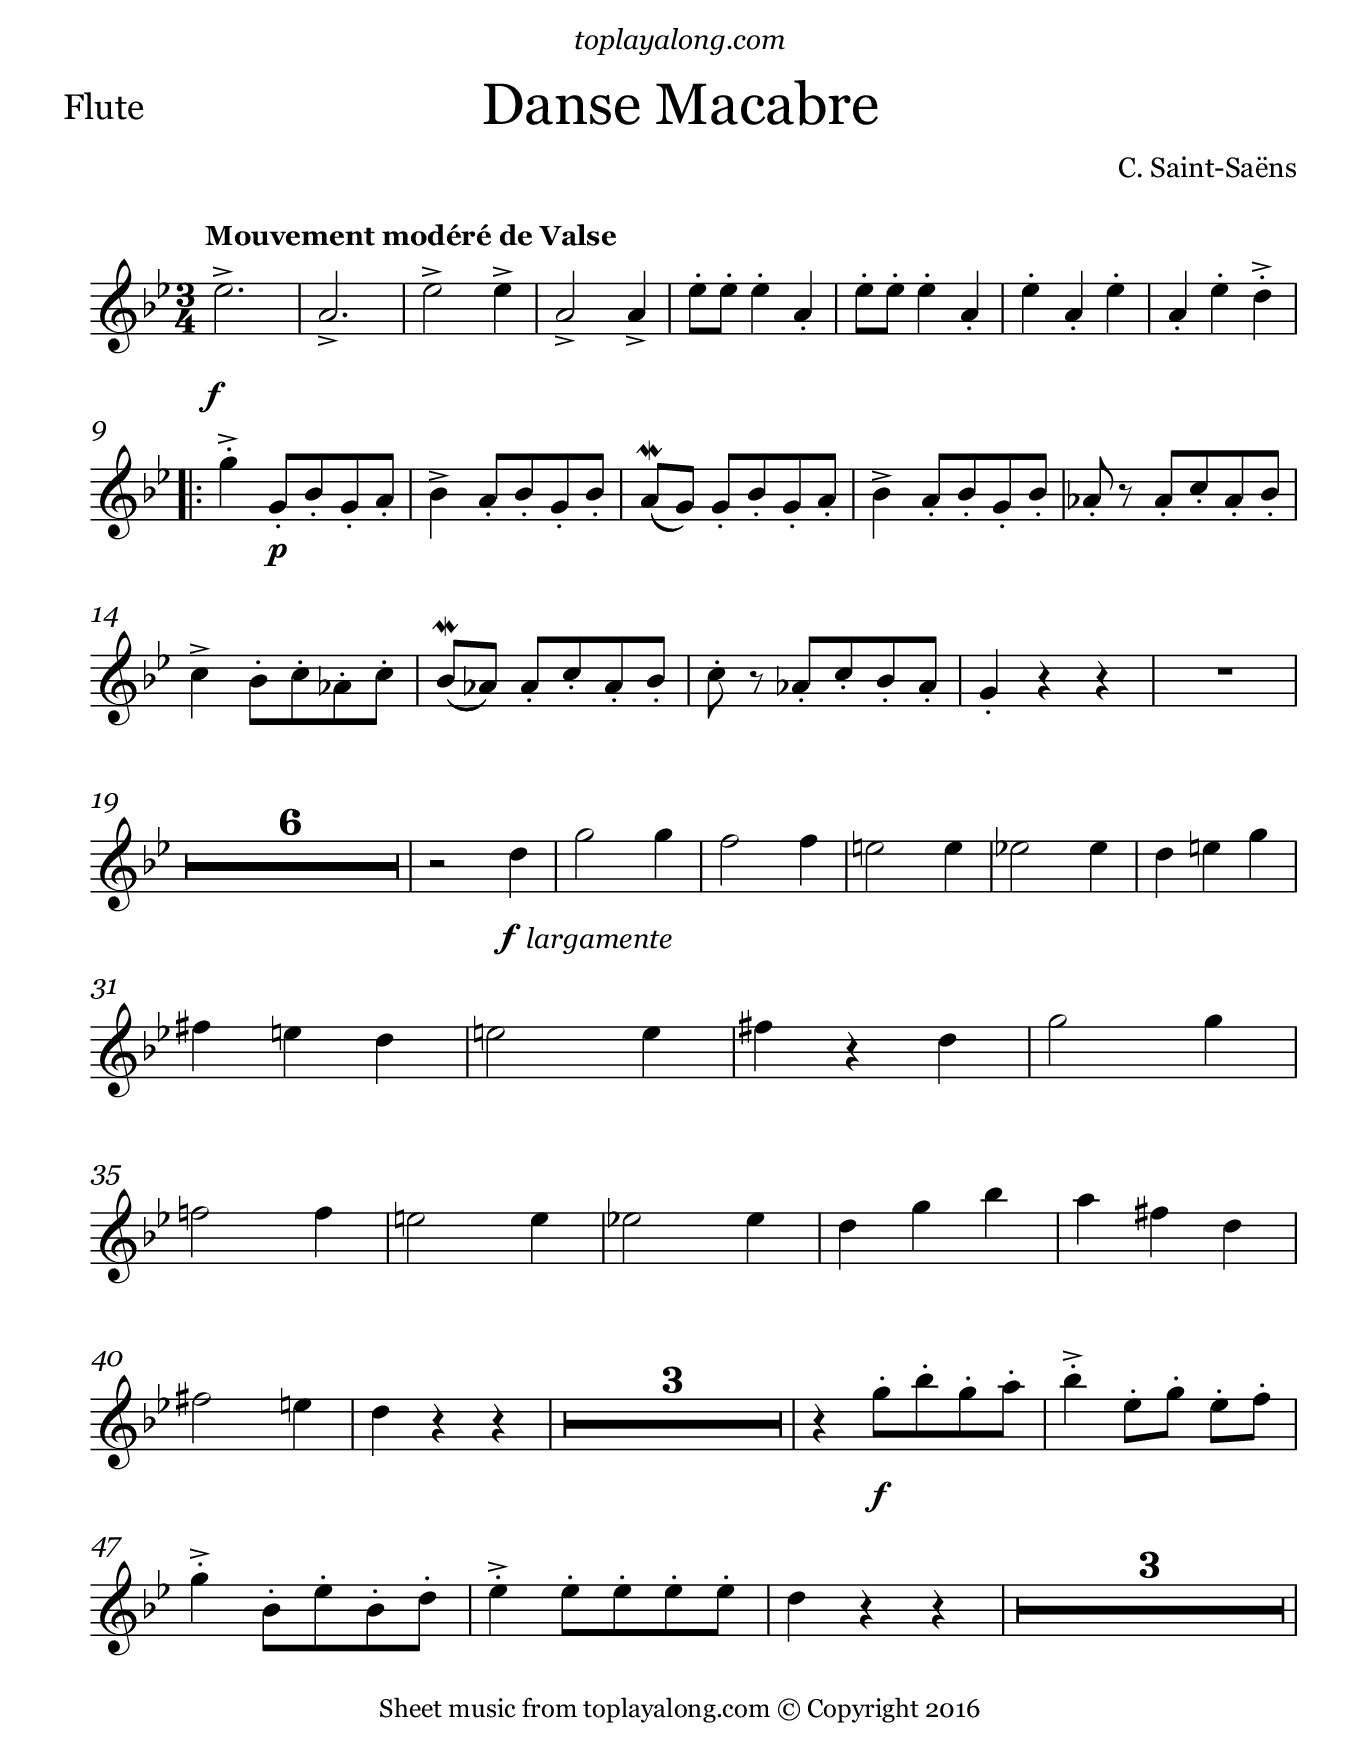 Danse Macabre by Saint-Saëns. Sheet music for Flute, page 1.